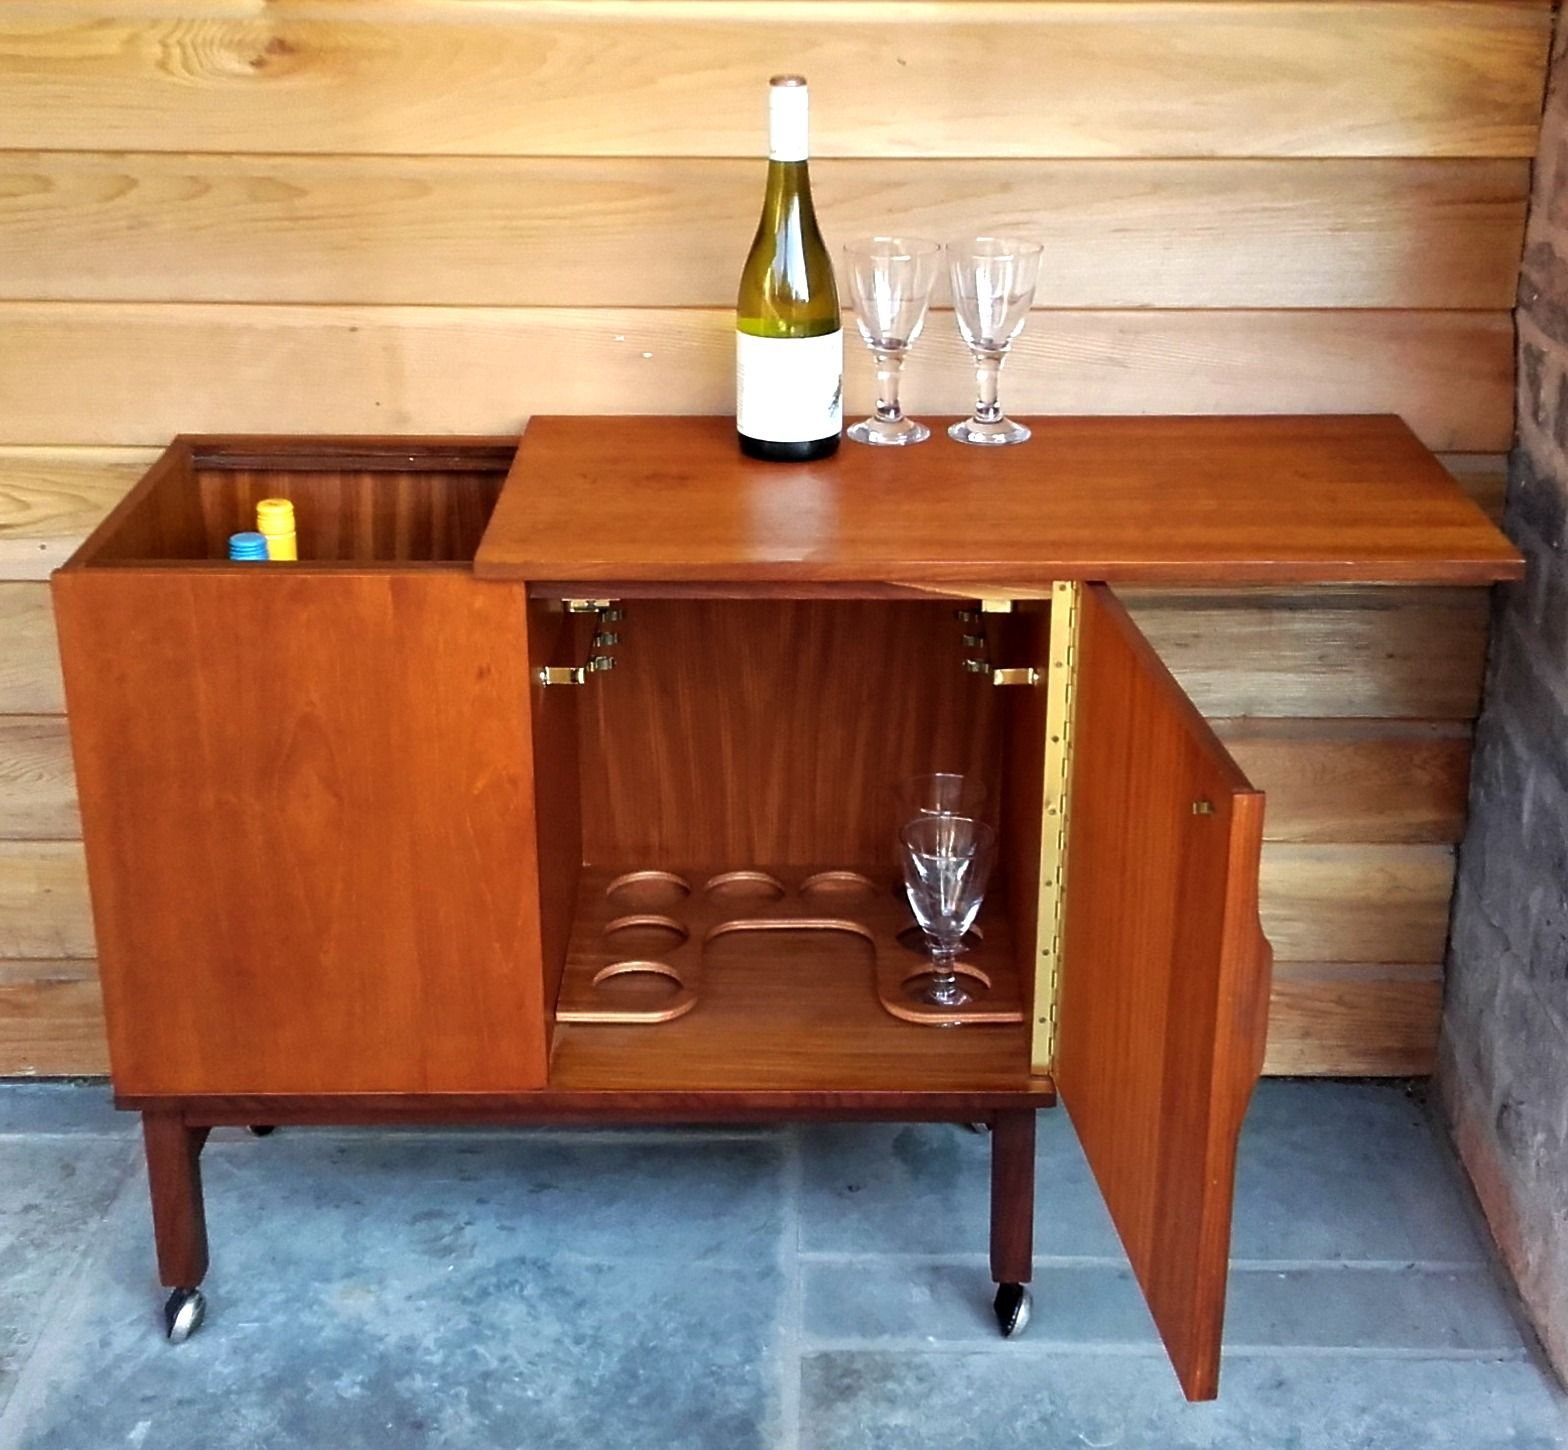 This Lovely Teak Drinks Cabinet Has A Party Piece The Top Slides Open Revealing Metal Sleeved Stor Drinks Cabinet Mid Century Furniture Contemporary Interior